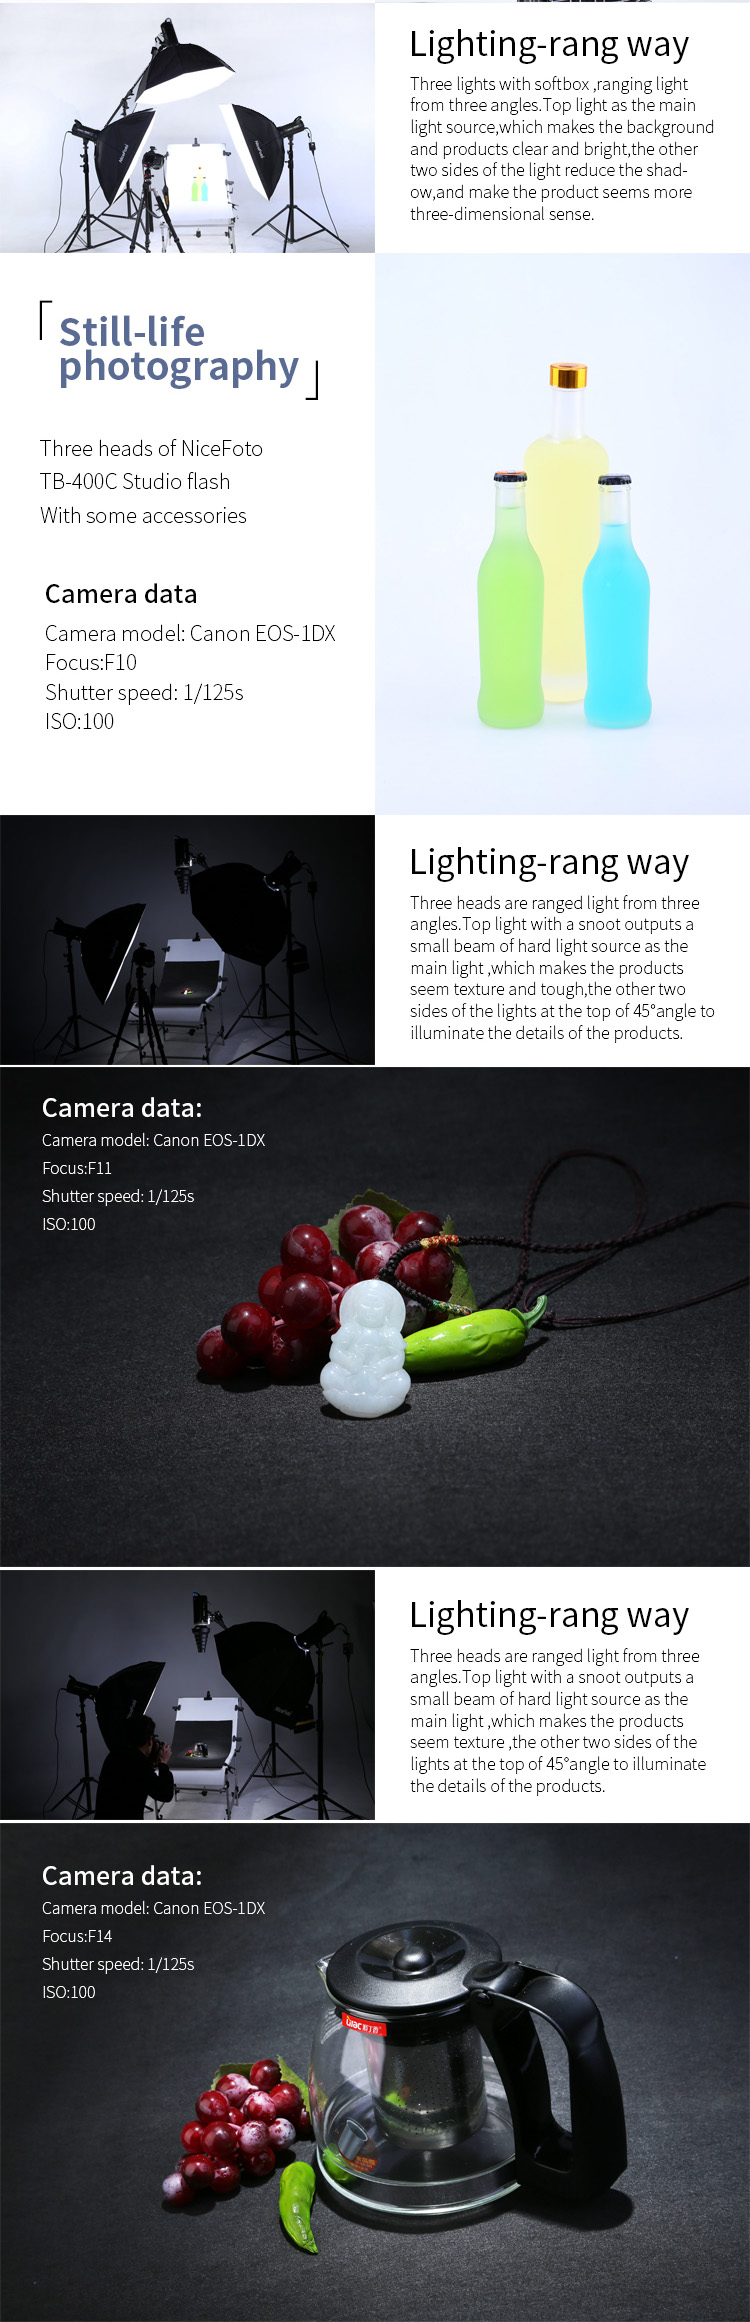 TB-400C NiceFoto Studio Equipment Studio Flash Lighting Strobe flash Camera photo  flash Photographic equipment